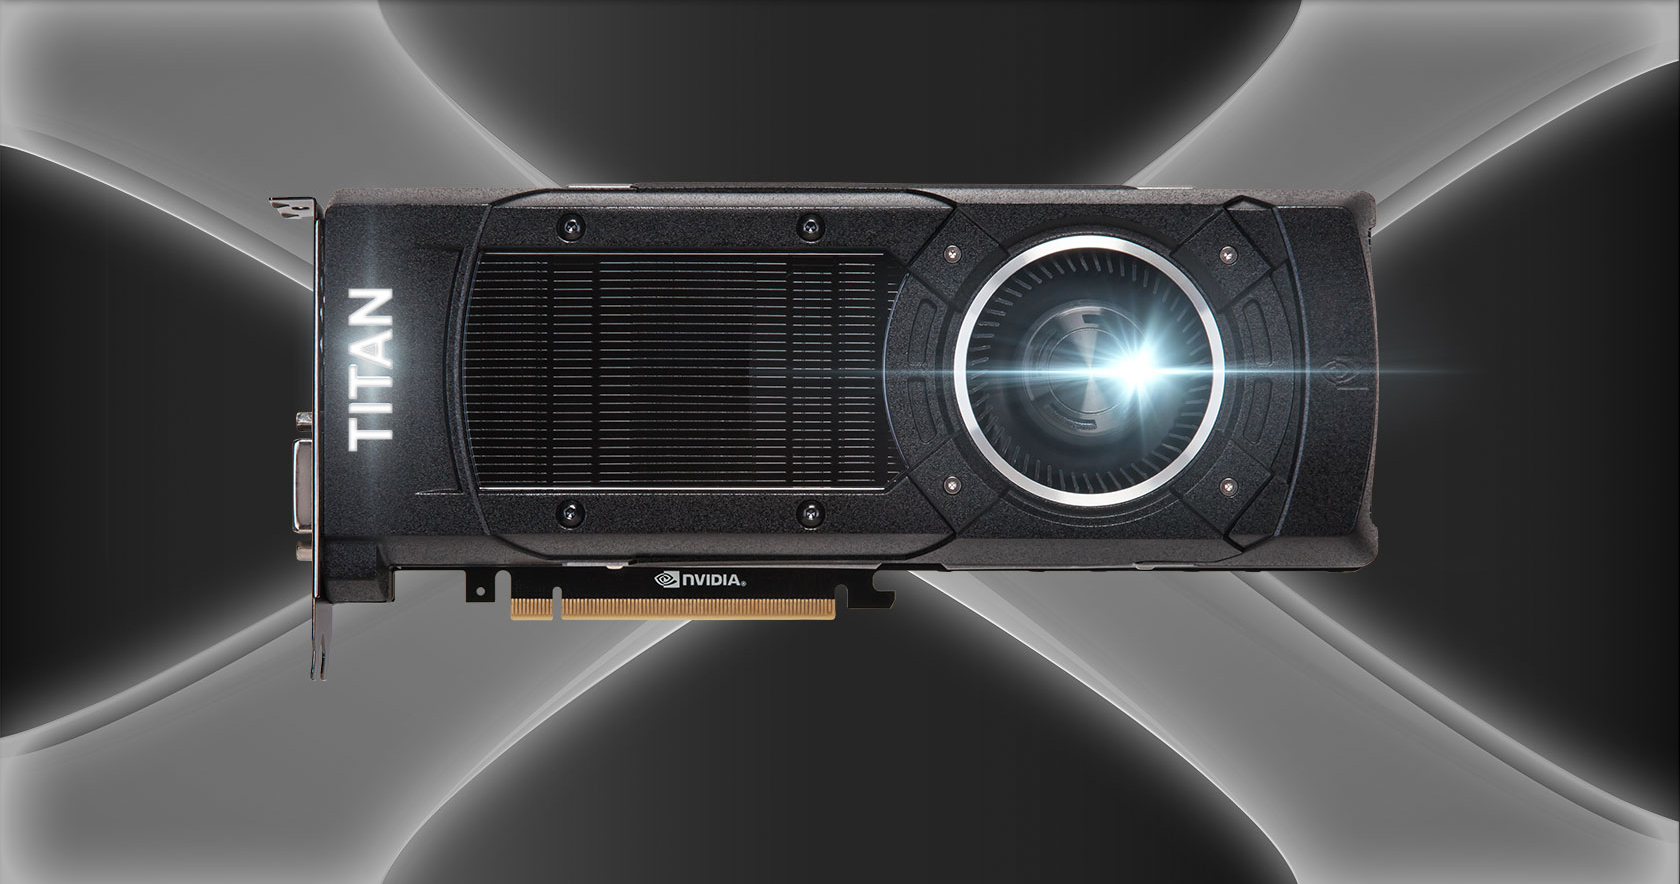 Photo of GeForce GTX Titan X in reviews - only in pairs or threes